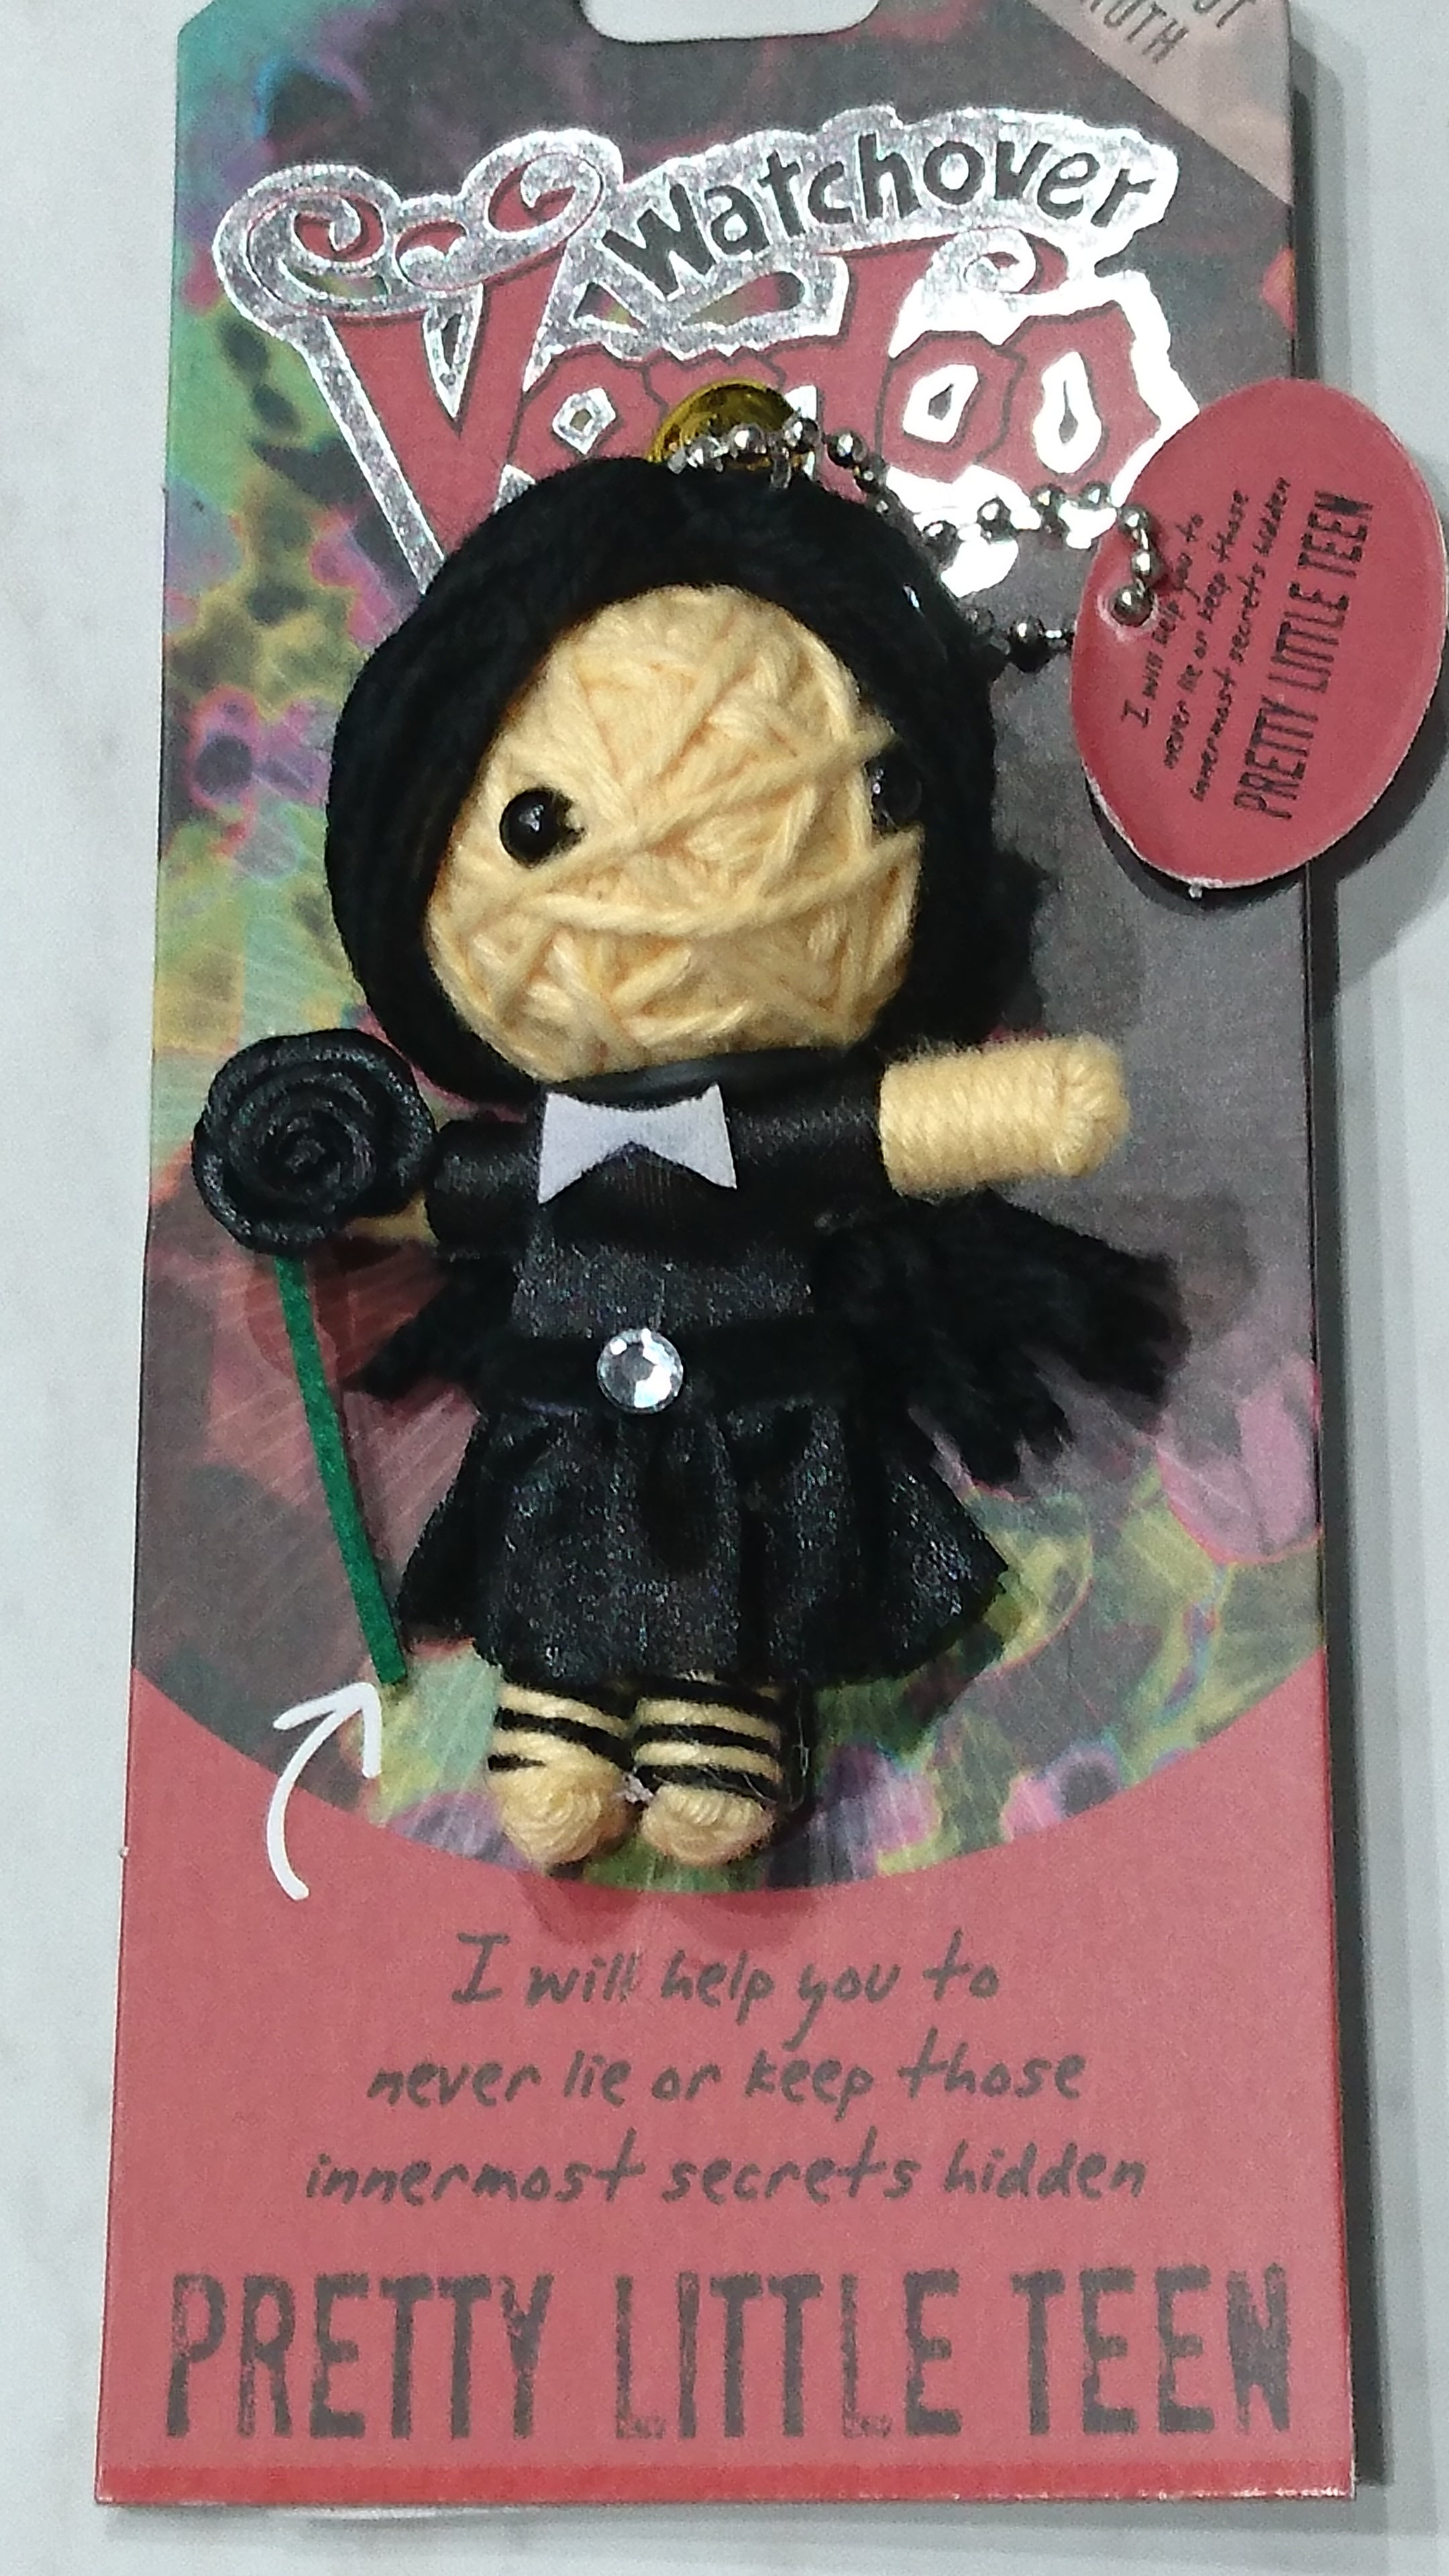 Watchover Voodoo Dolls - New